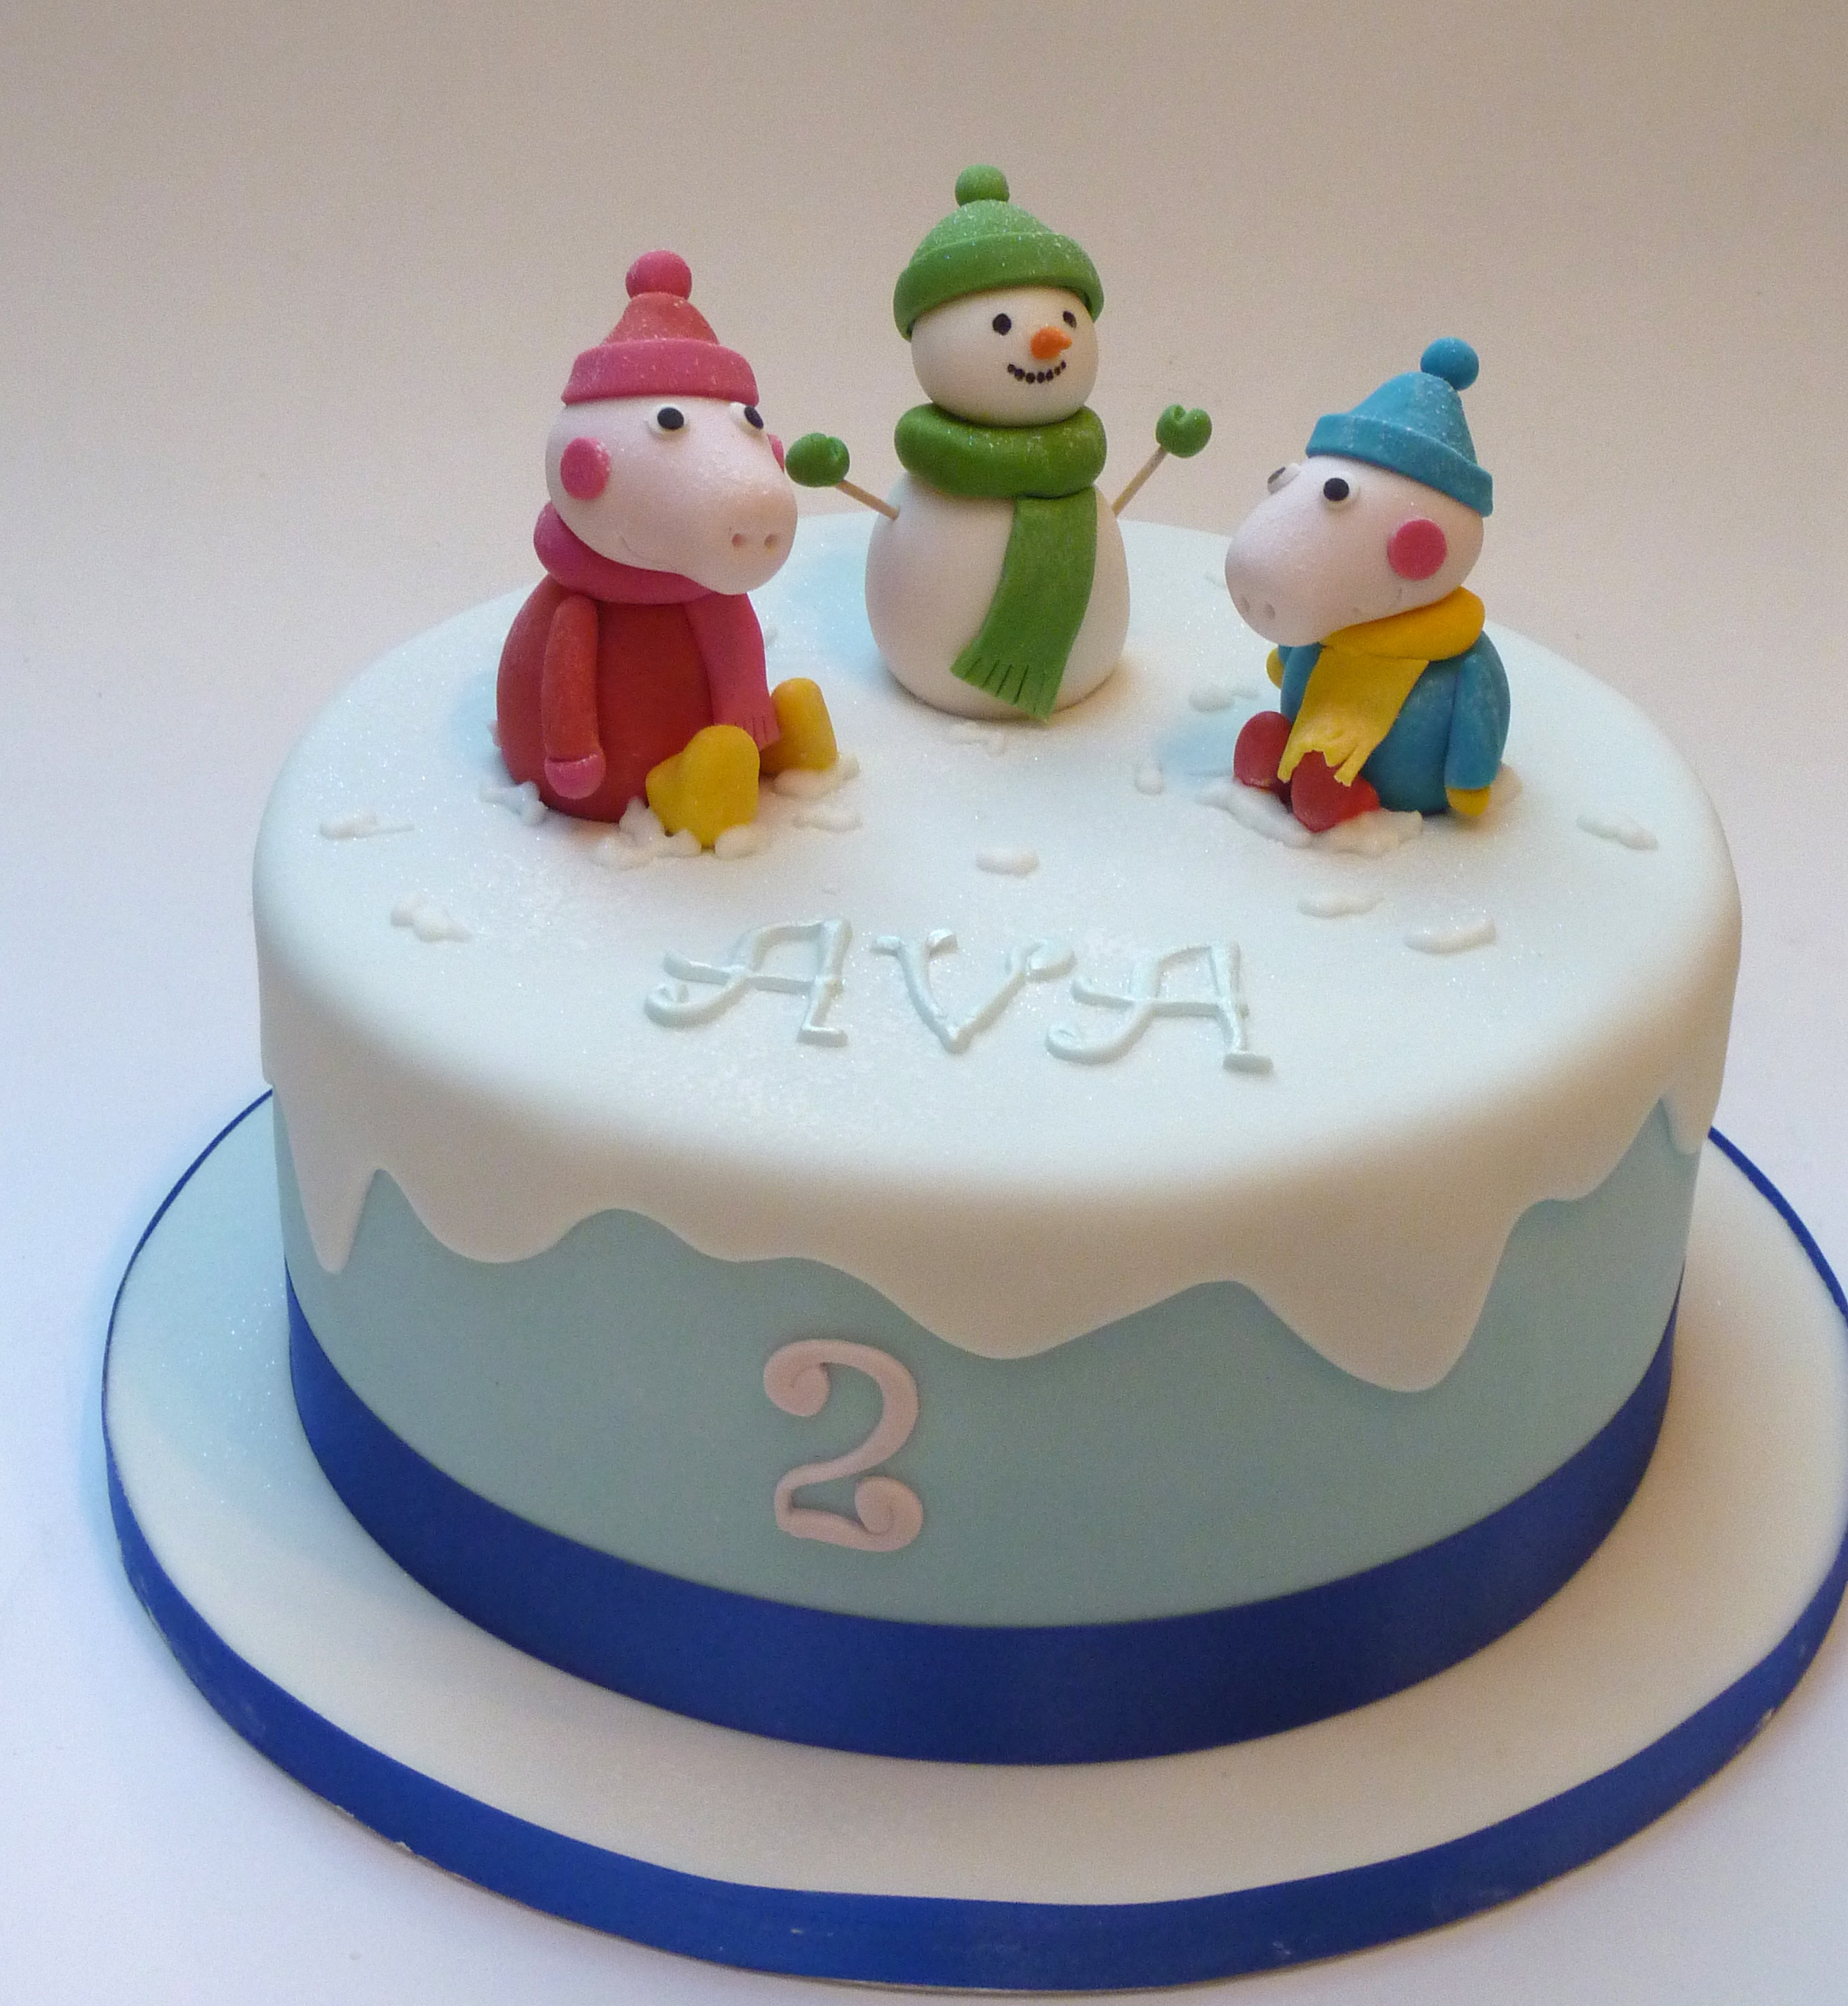 Cake Making Classes Northumberland : Peppa Pig Snowy Day Etoile Bakery